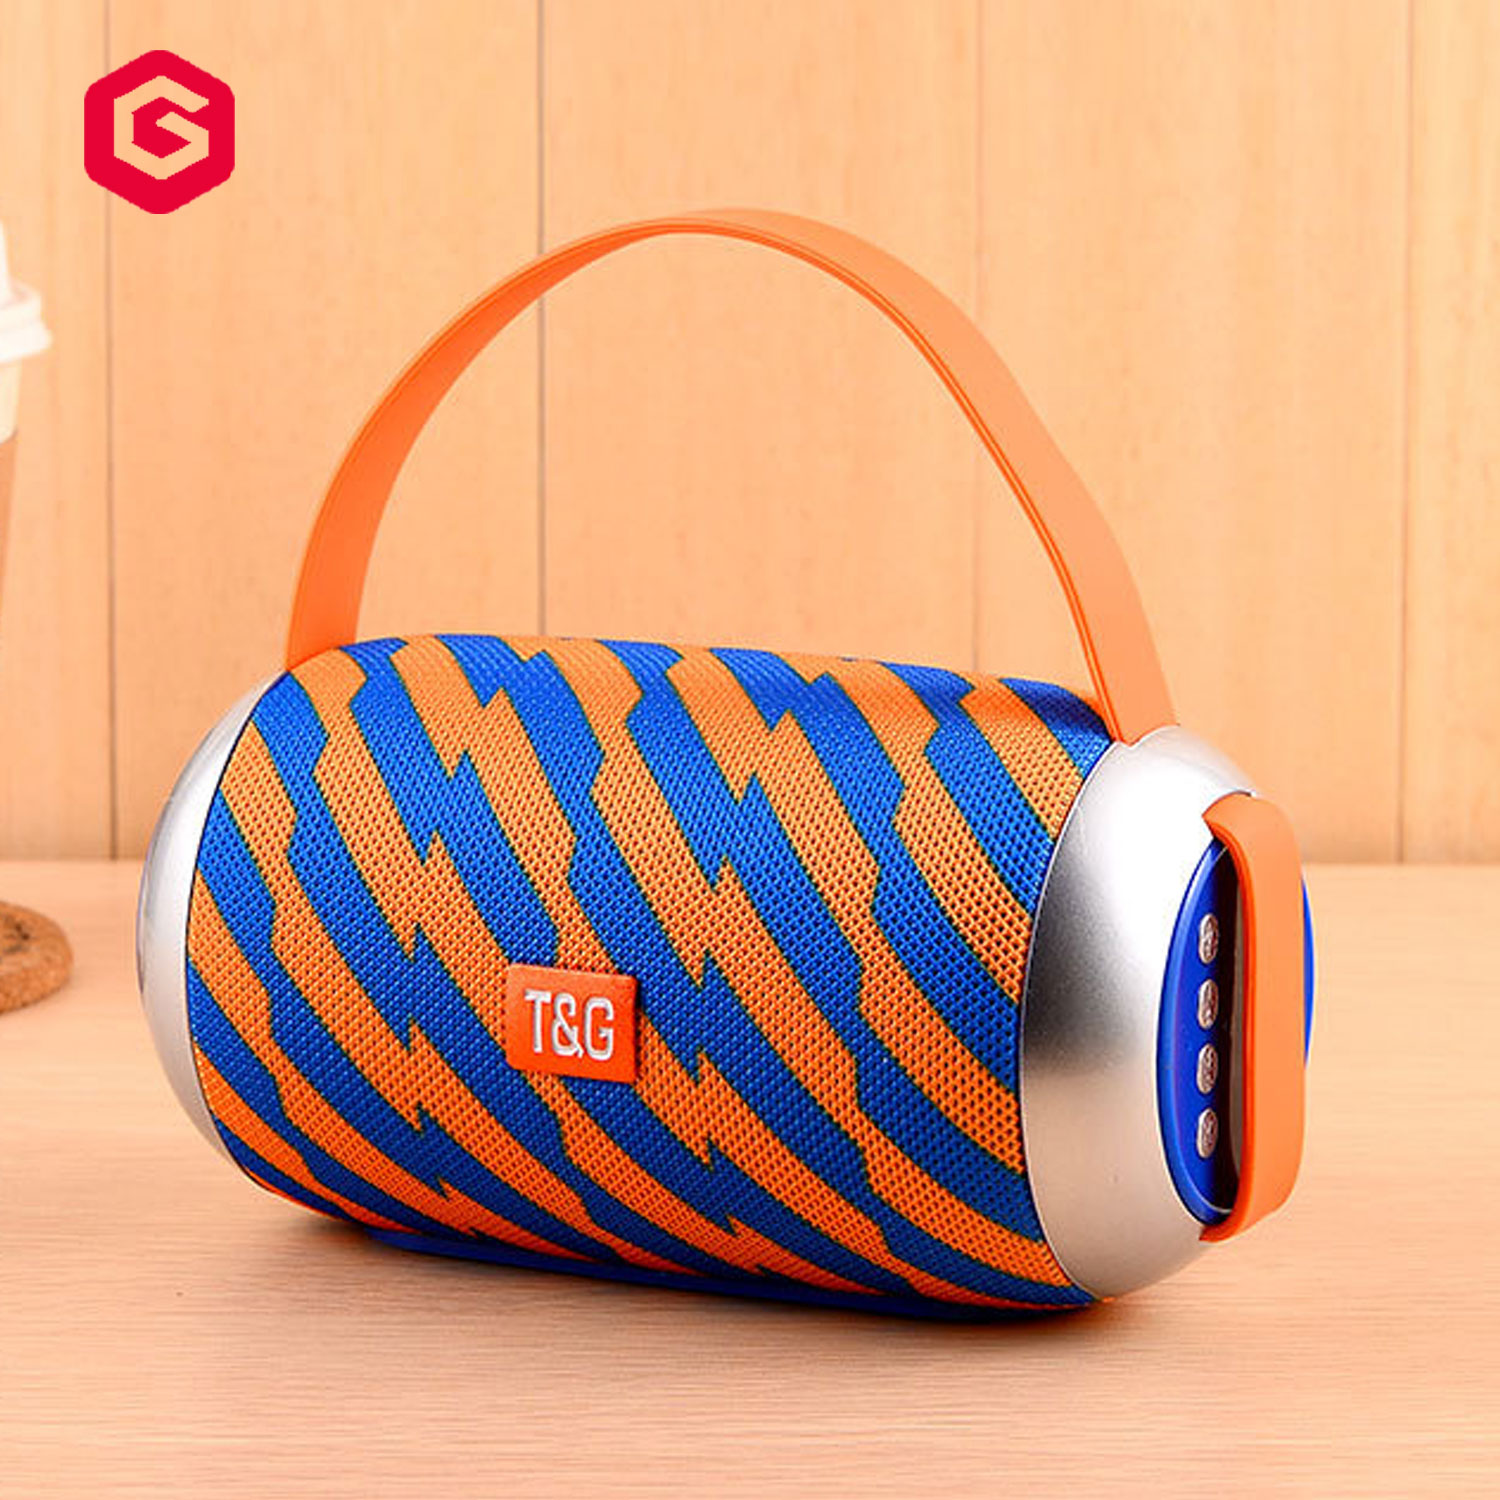 Aluminium  Wireless Speakers Outdoor Portable Mini Speaker With LED Lights Support TF/FM Pocket Size Speaker